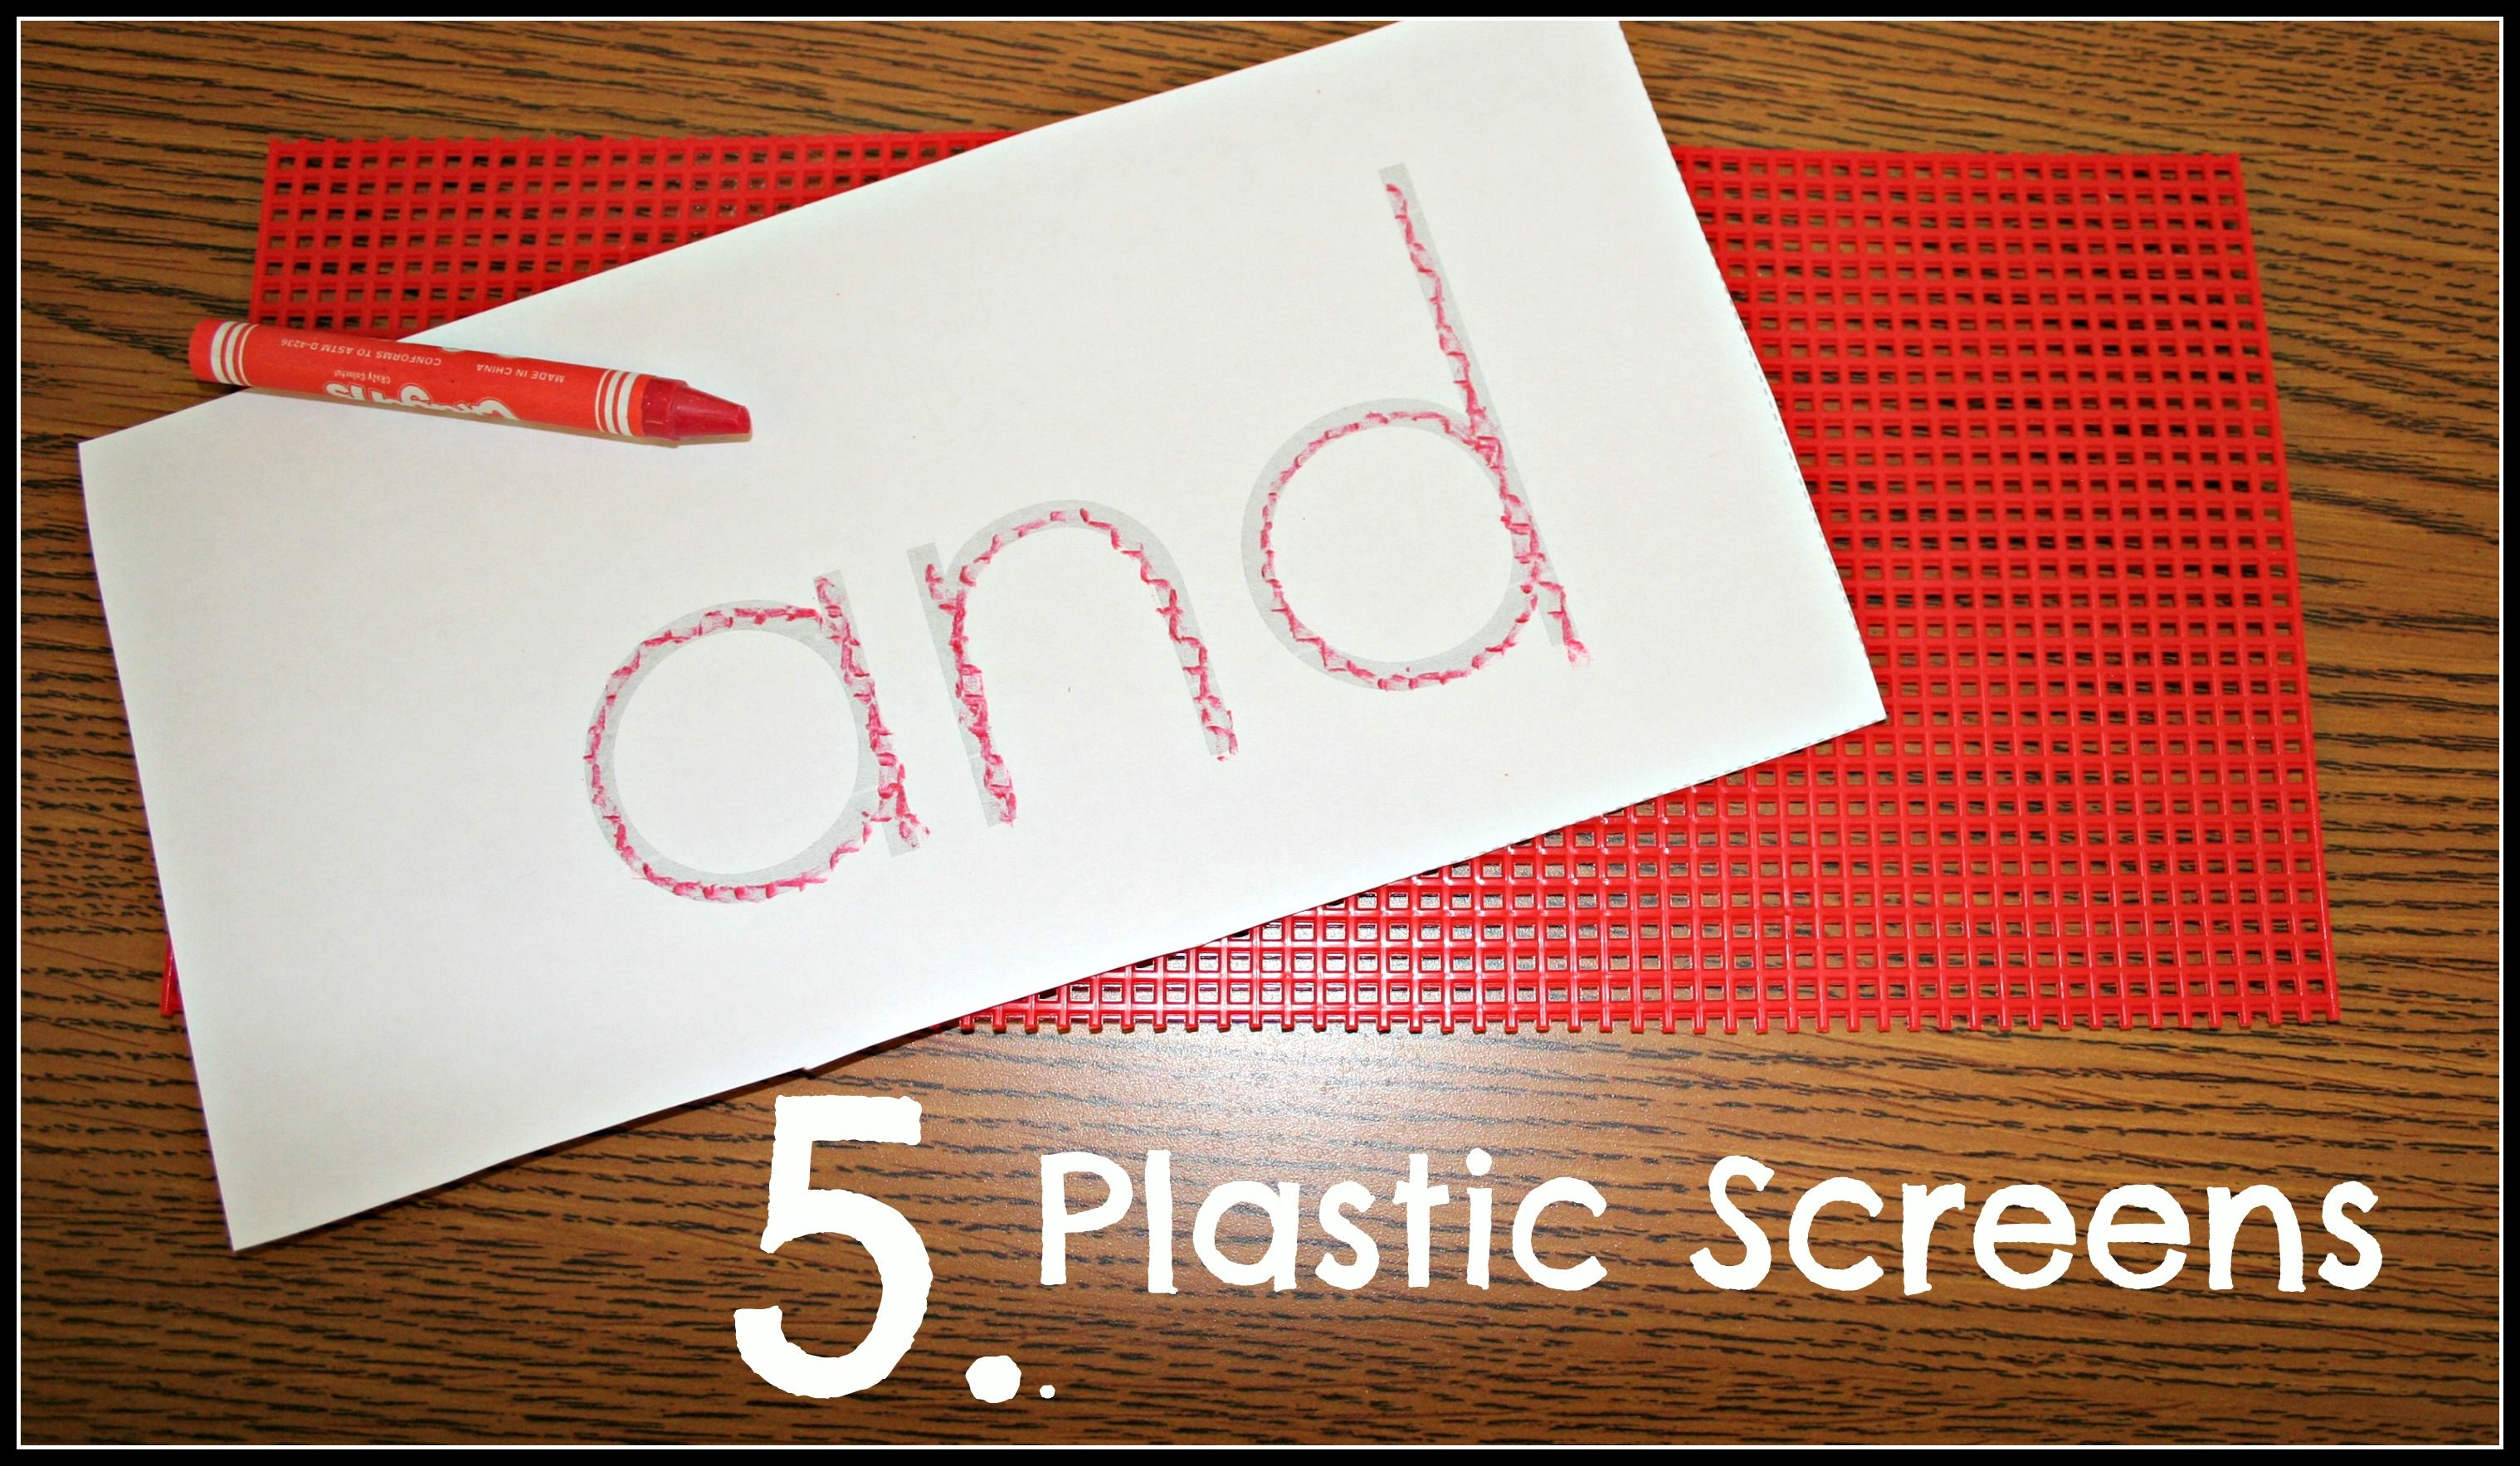 Multi Sensory Ideas For Teaching Sight Words With Images